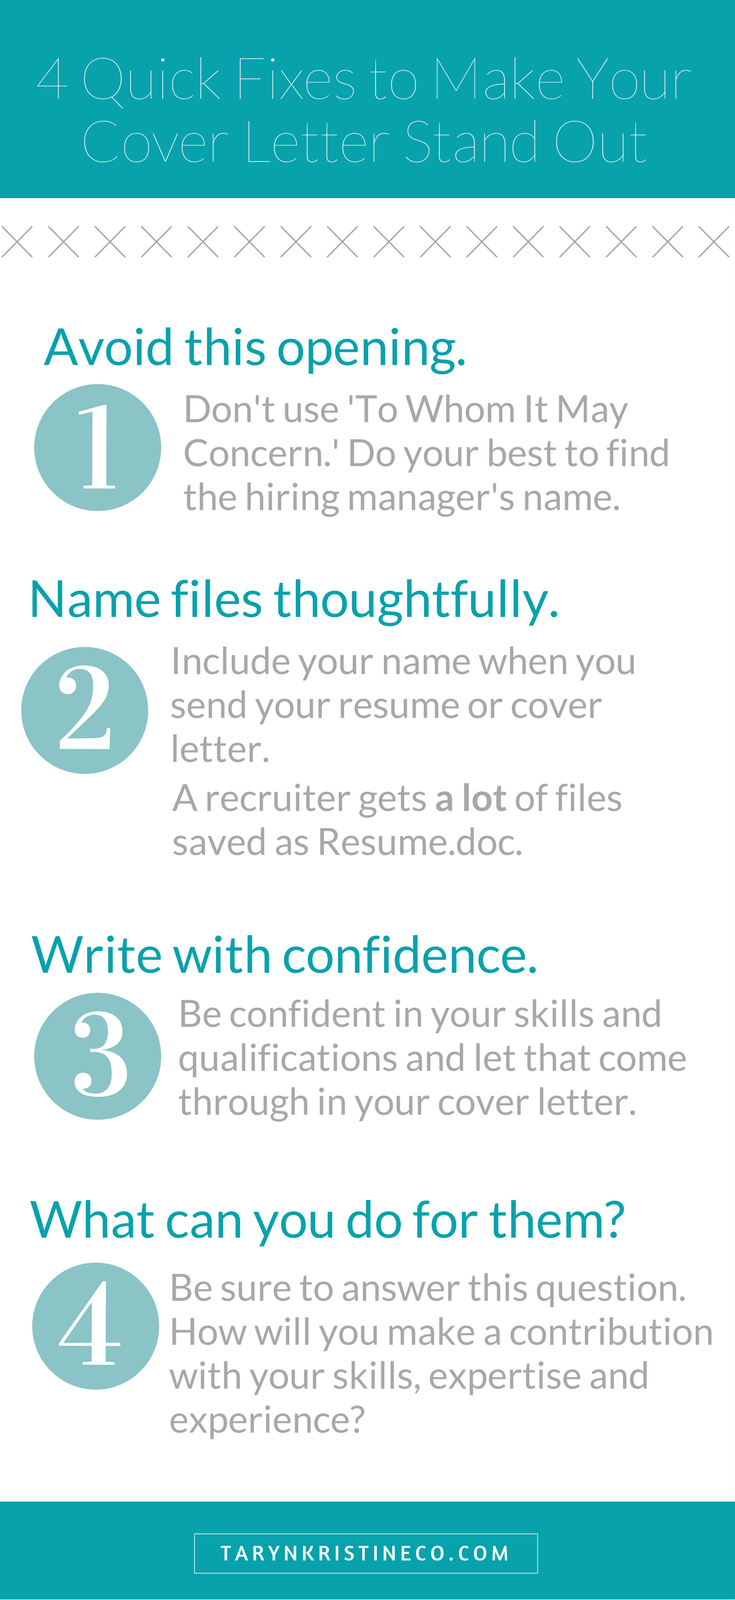 Four Quick Fixes To Make Your Cover Letter Stand Out Top Blogs